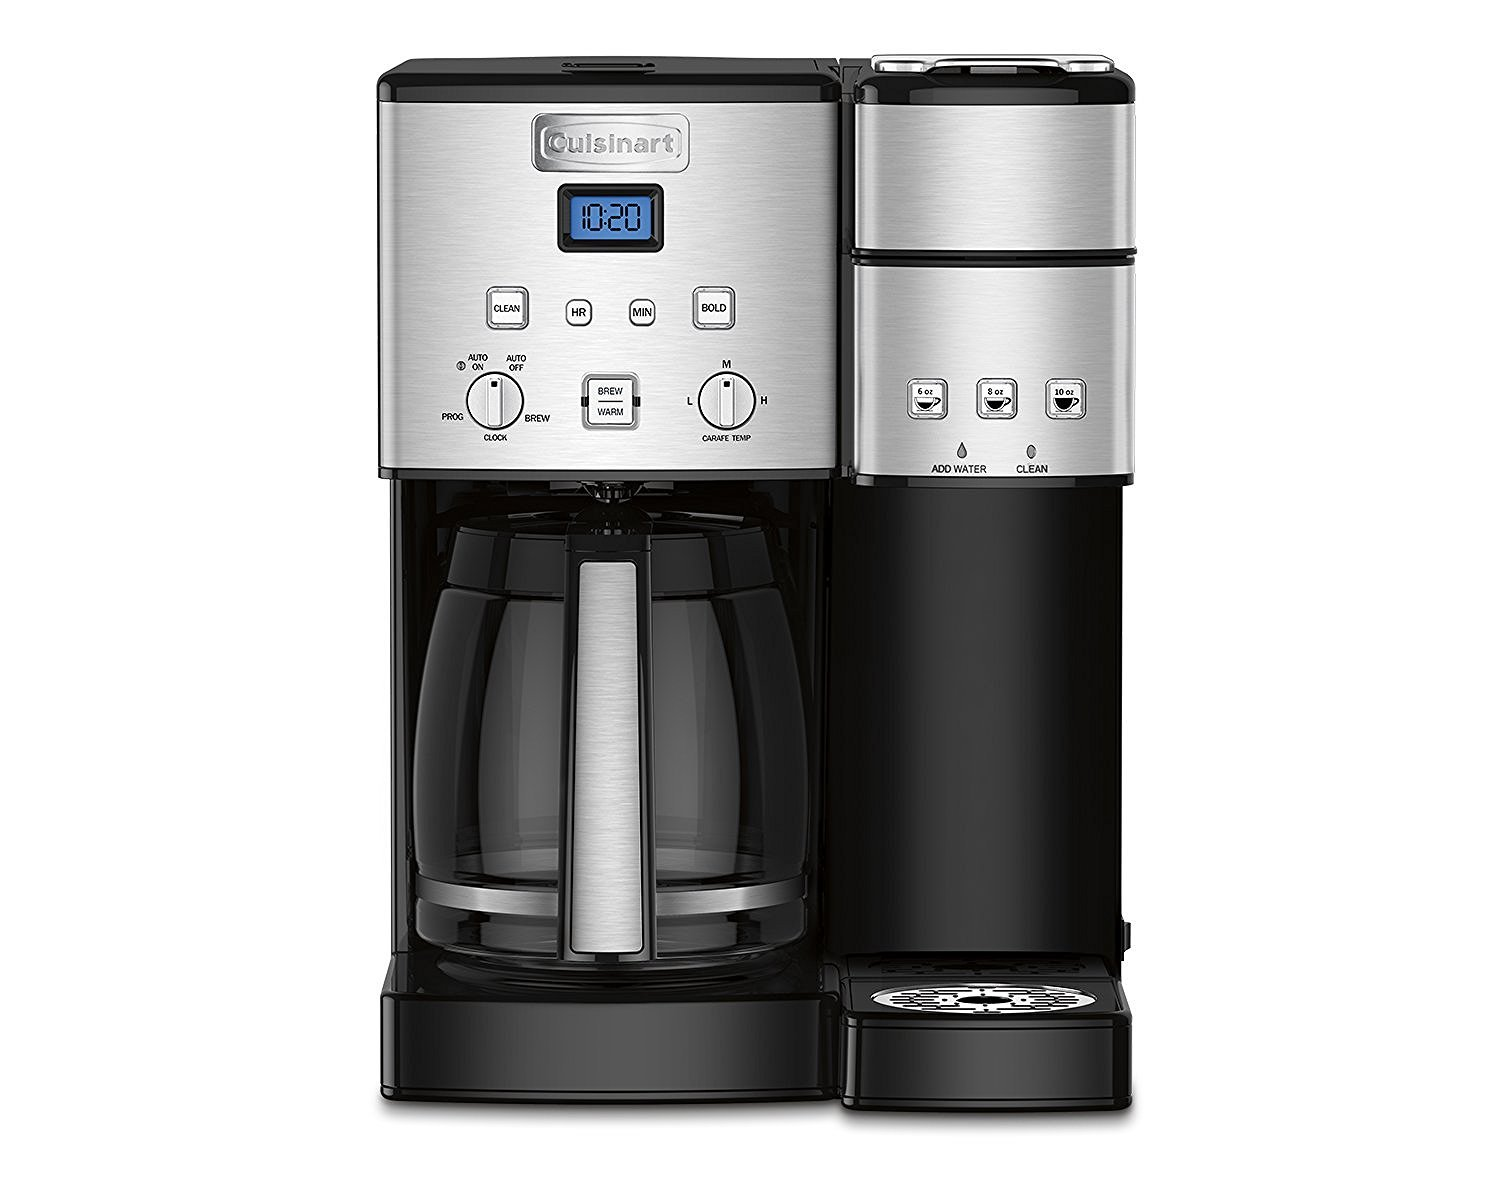 Cuisinart SS-15 12-Cup Coffee Maker and Single-Serve Brewer, Stainless Steel by Cuisinart